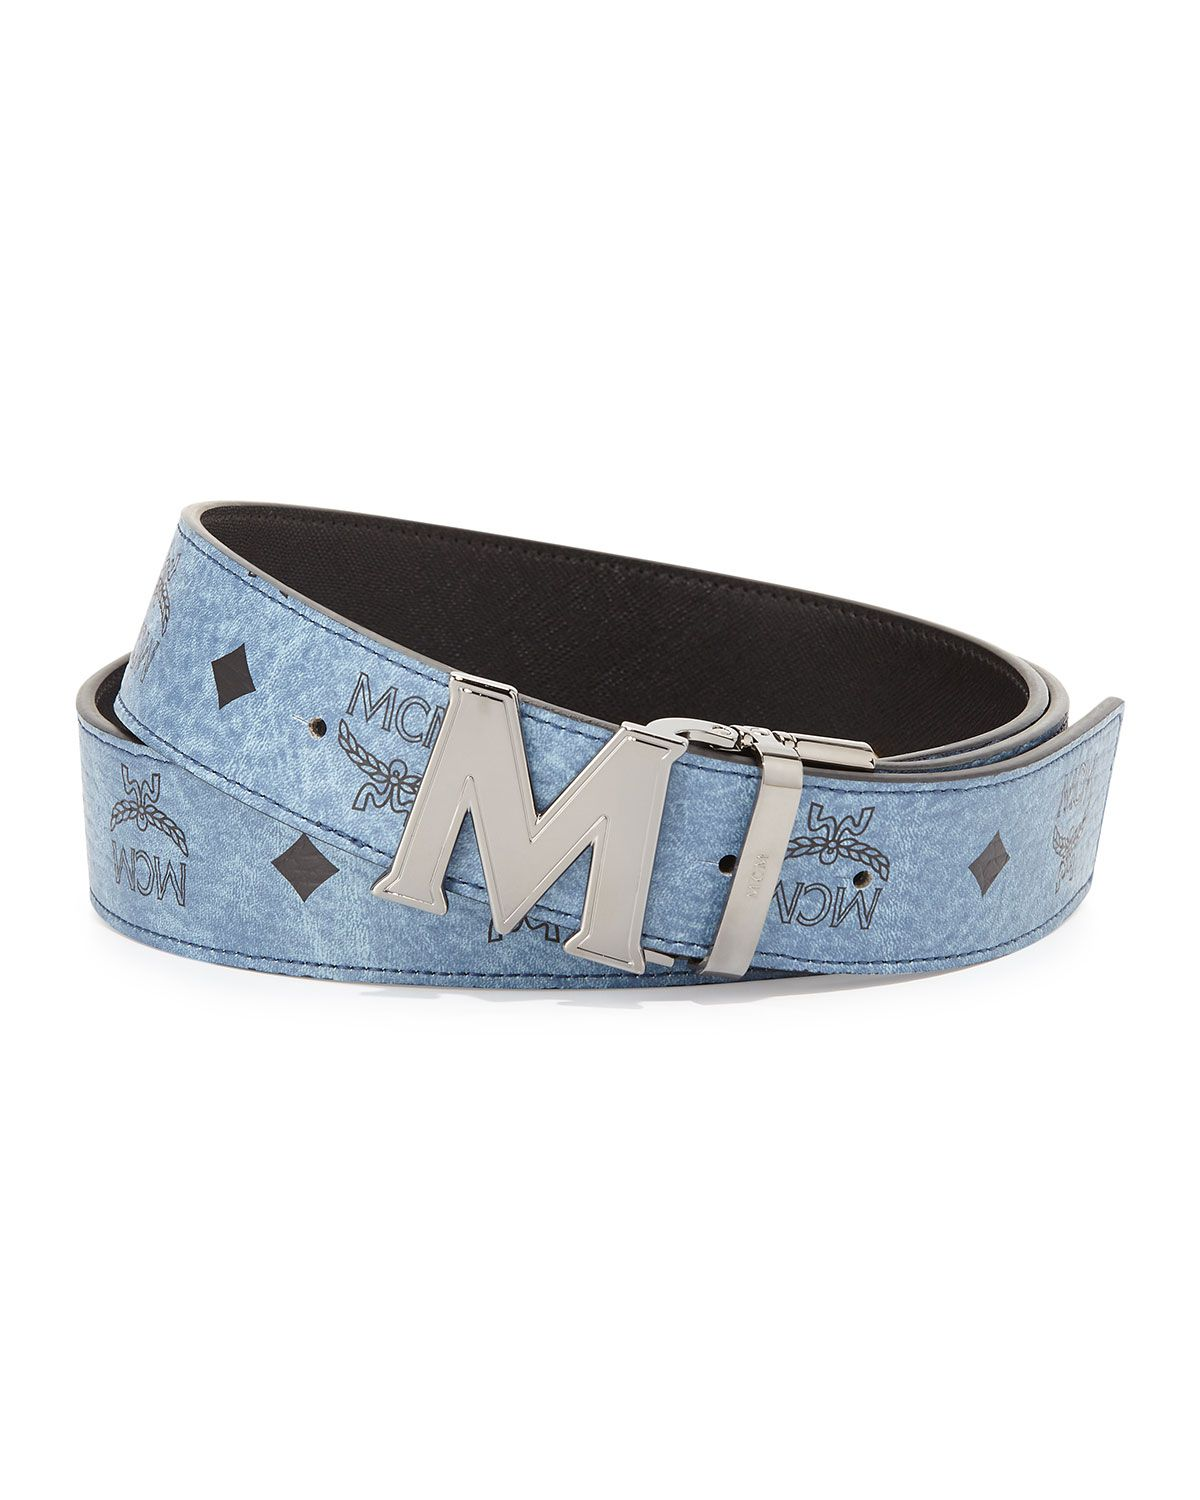 Reversible M Buckle Monogram Belt Denim Mcm Belt Real Leather Belt Mens Belts All items are authenticated through a rigorous process overseen by experts. mcm belt real leather belt mens belts